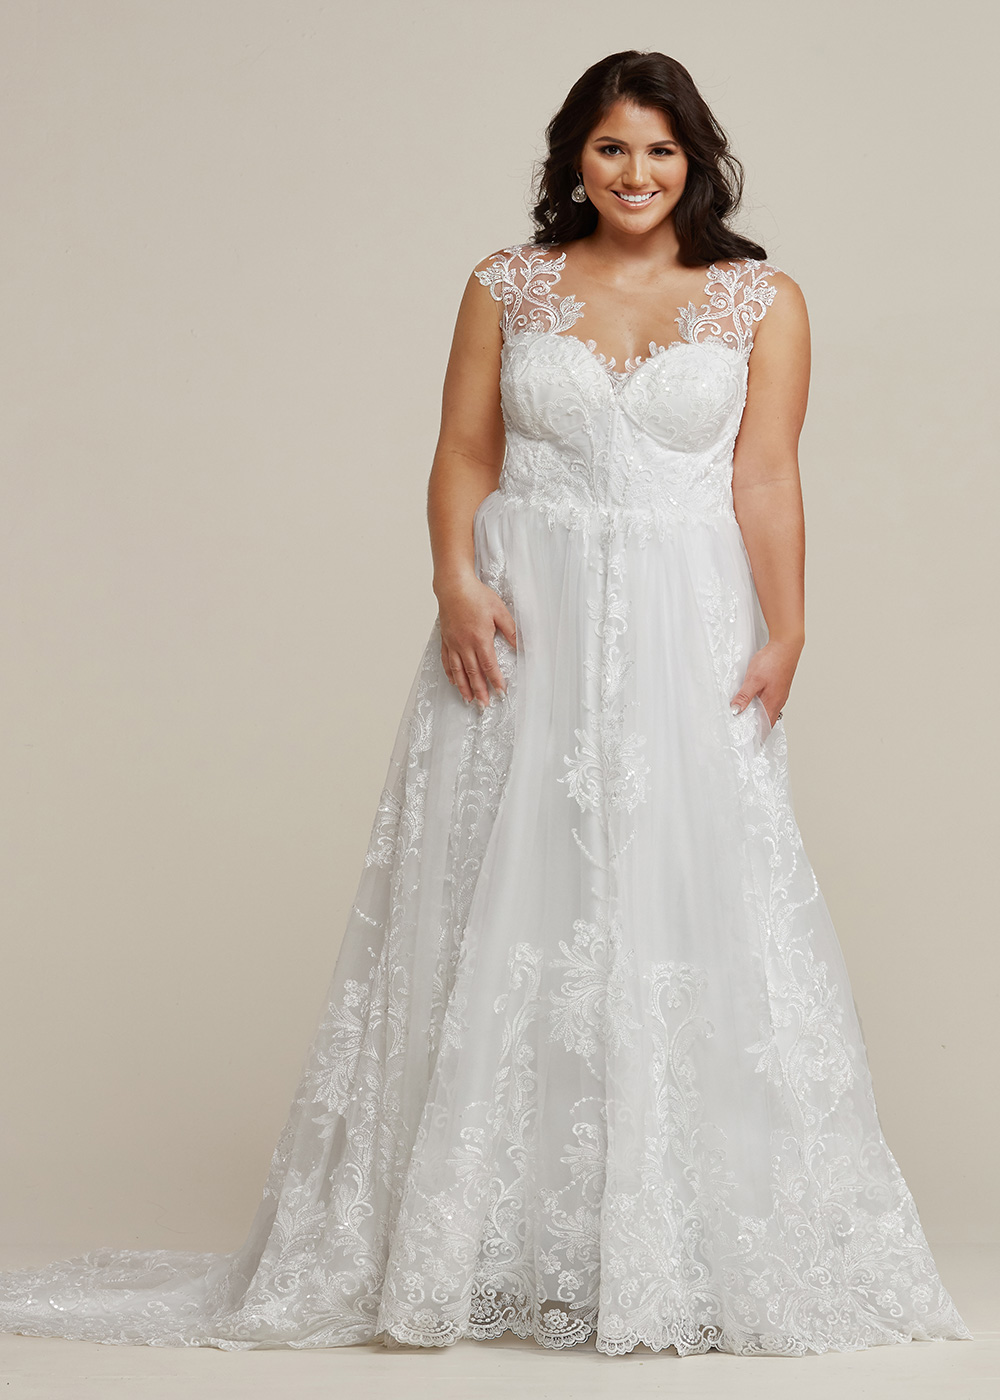 Isabelle Most Popular Dresses By Ashdon